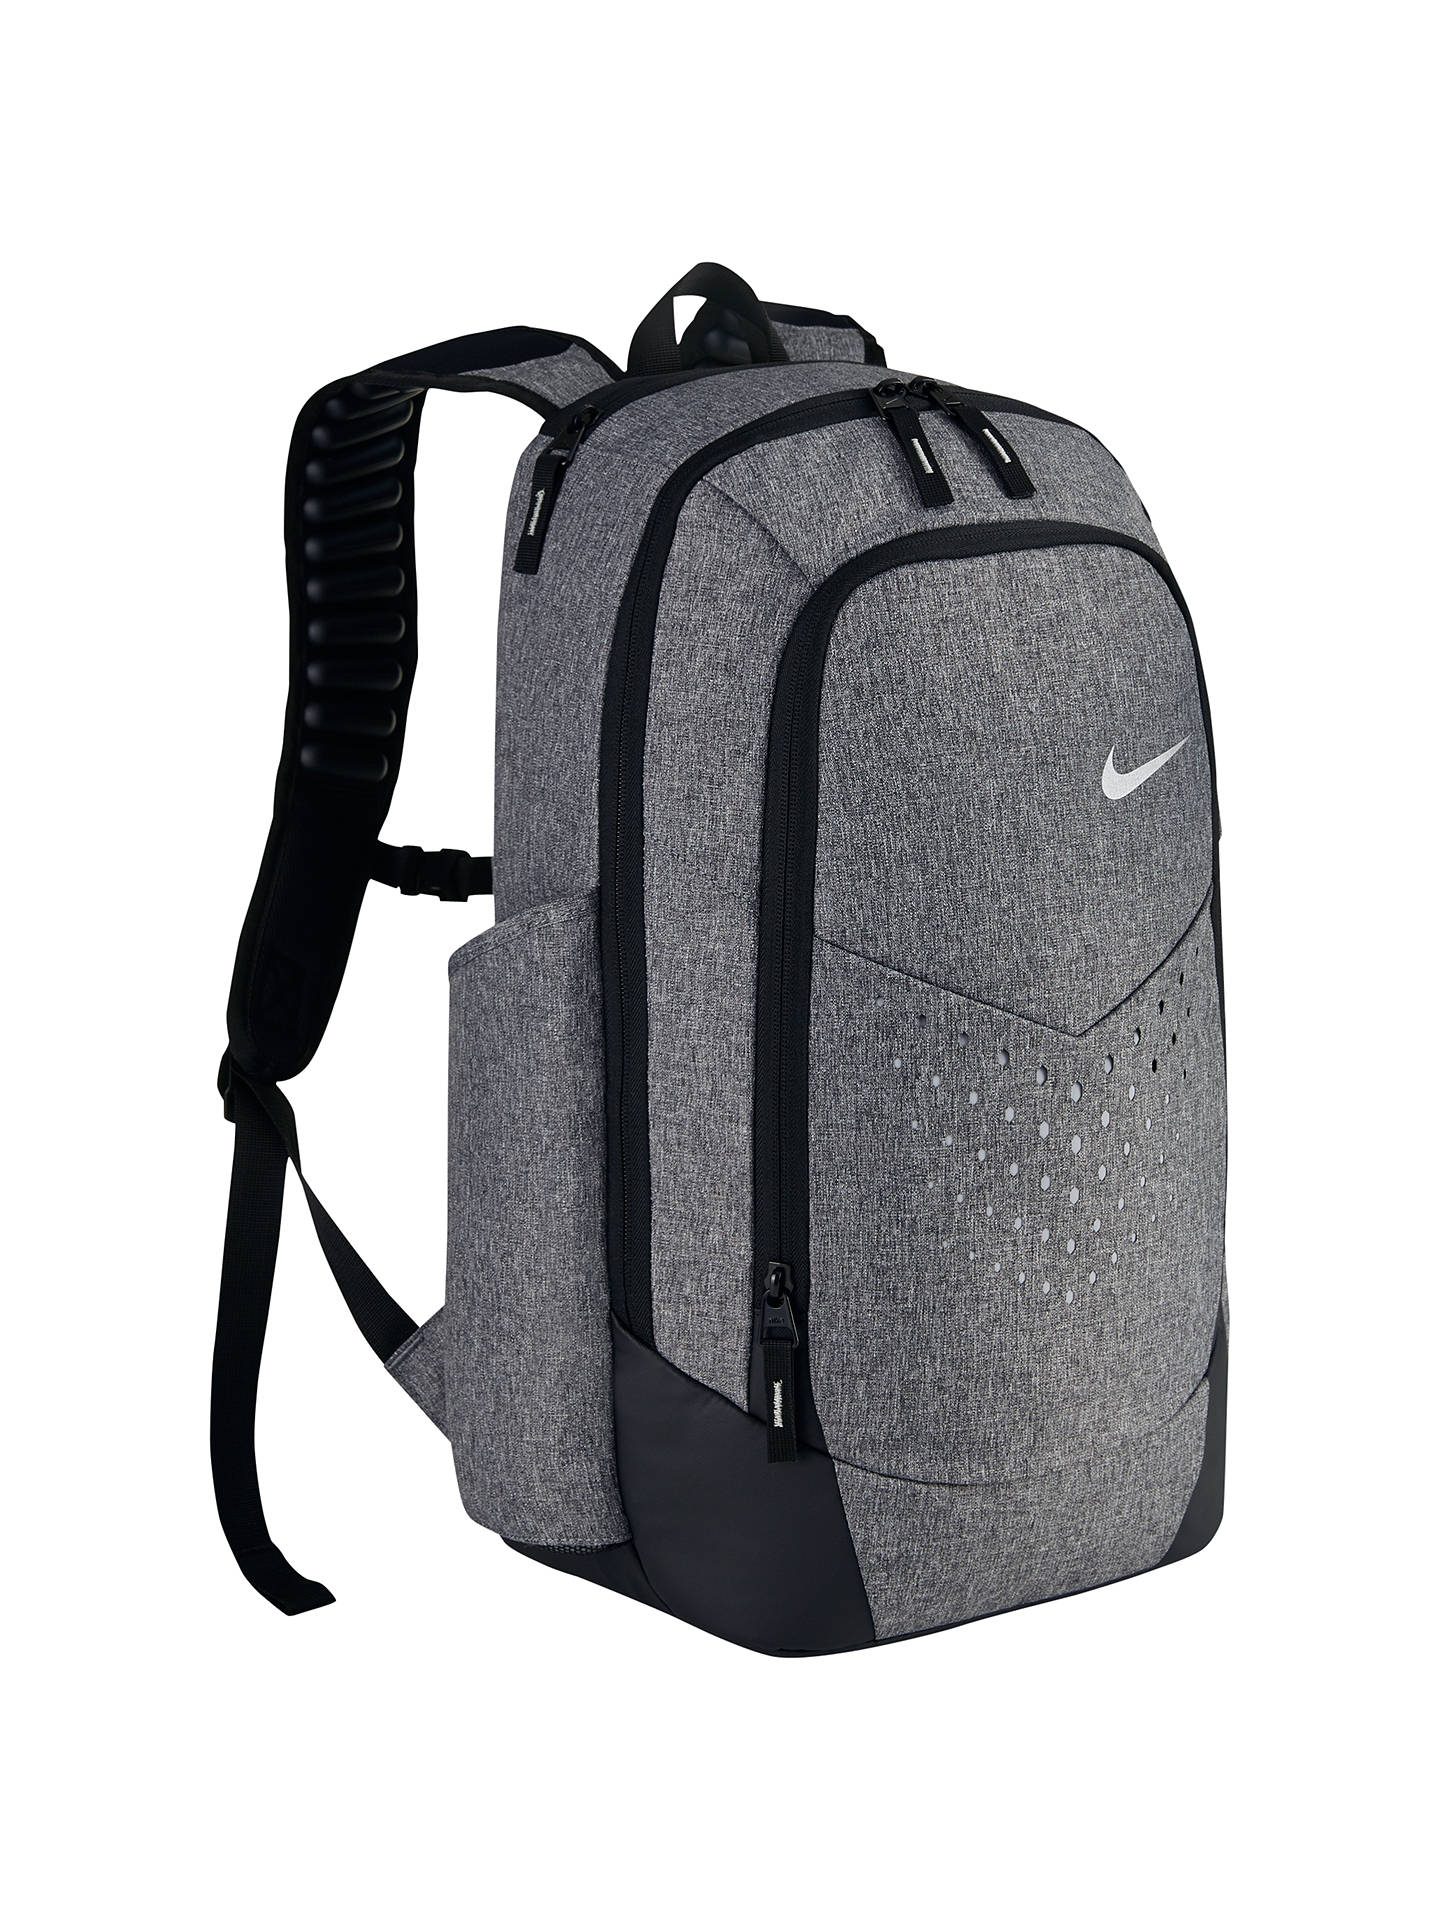 8a91388f4823d Buy Nike Vapor Energy Unisex Backpack, Black/Metallic Silver Online at  johnlewis.com ...